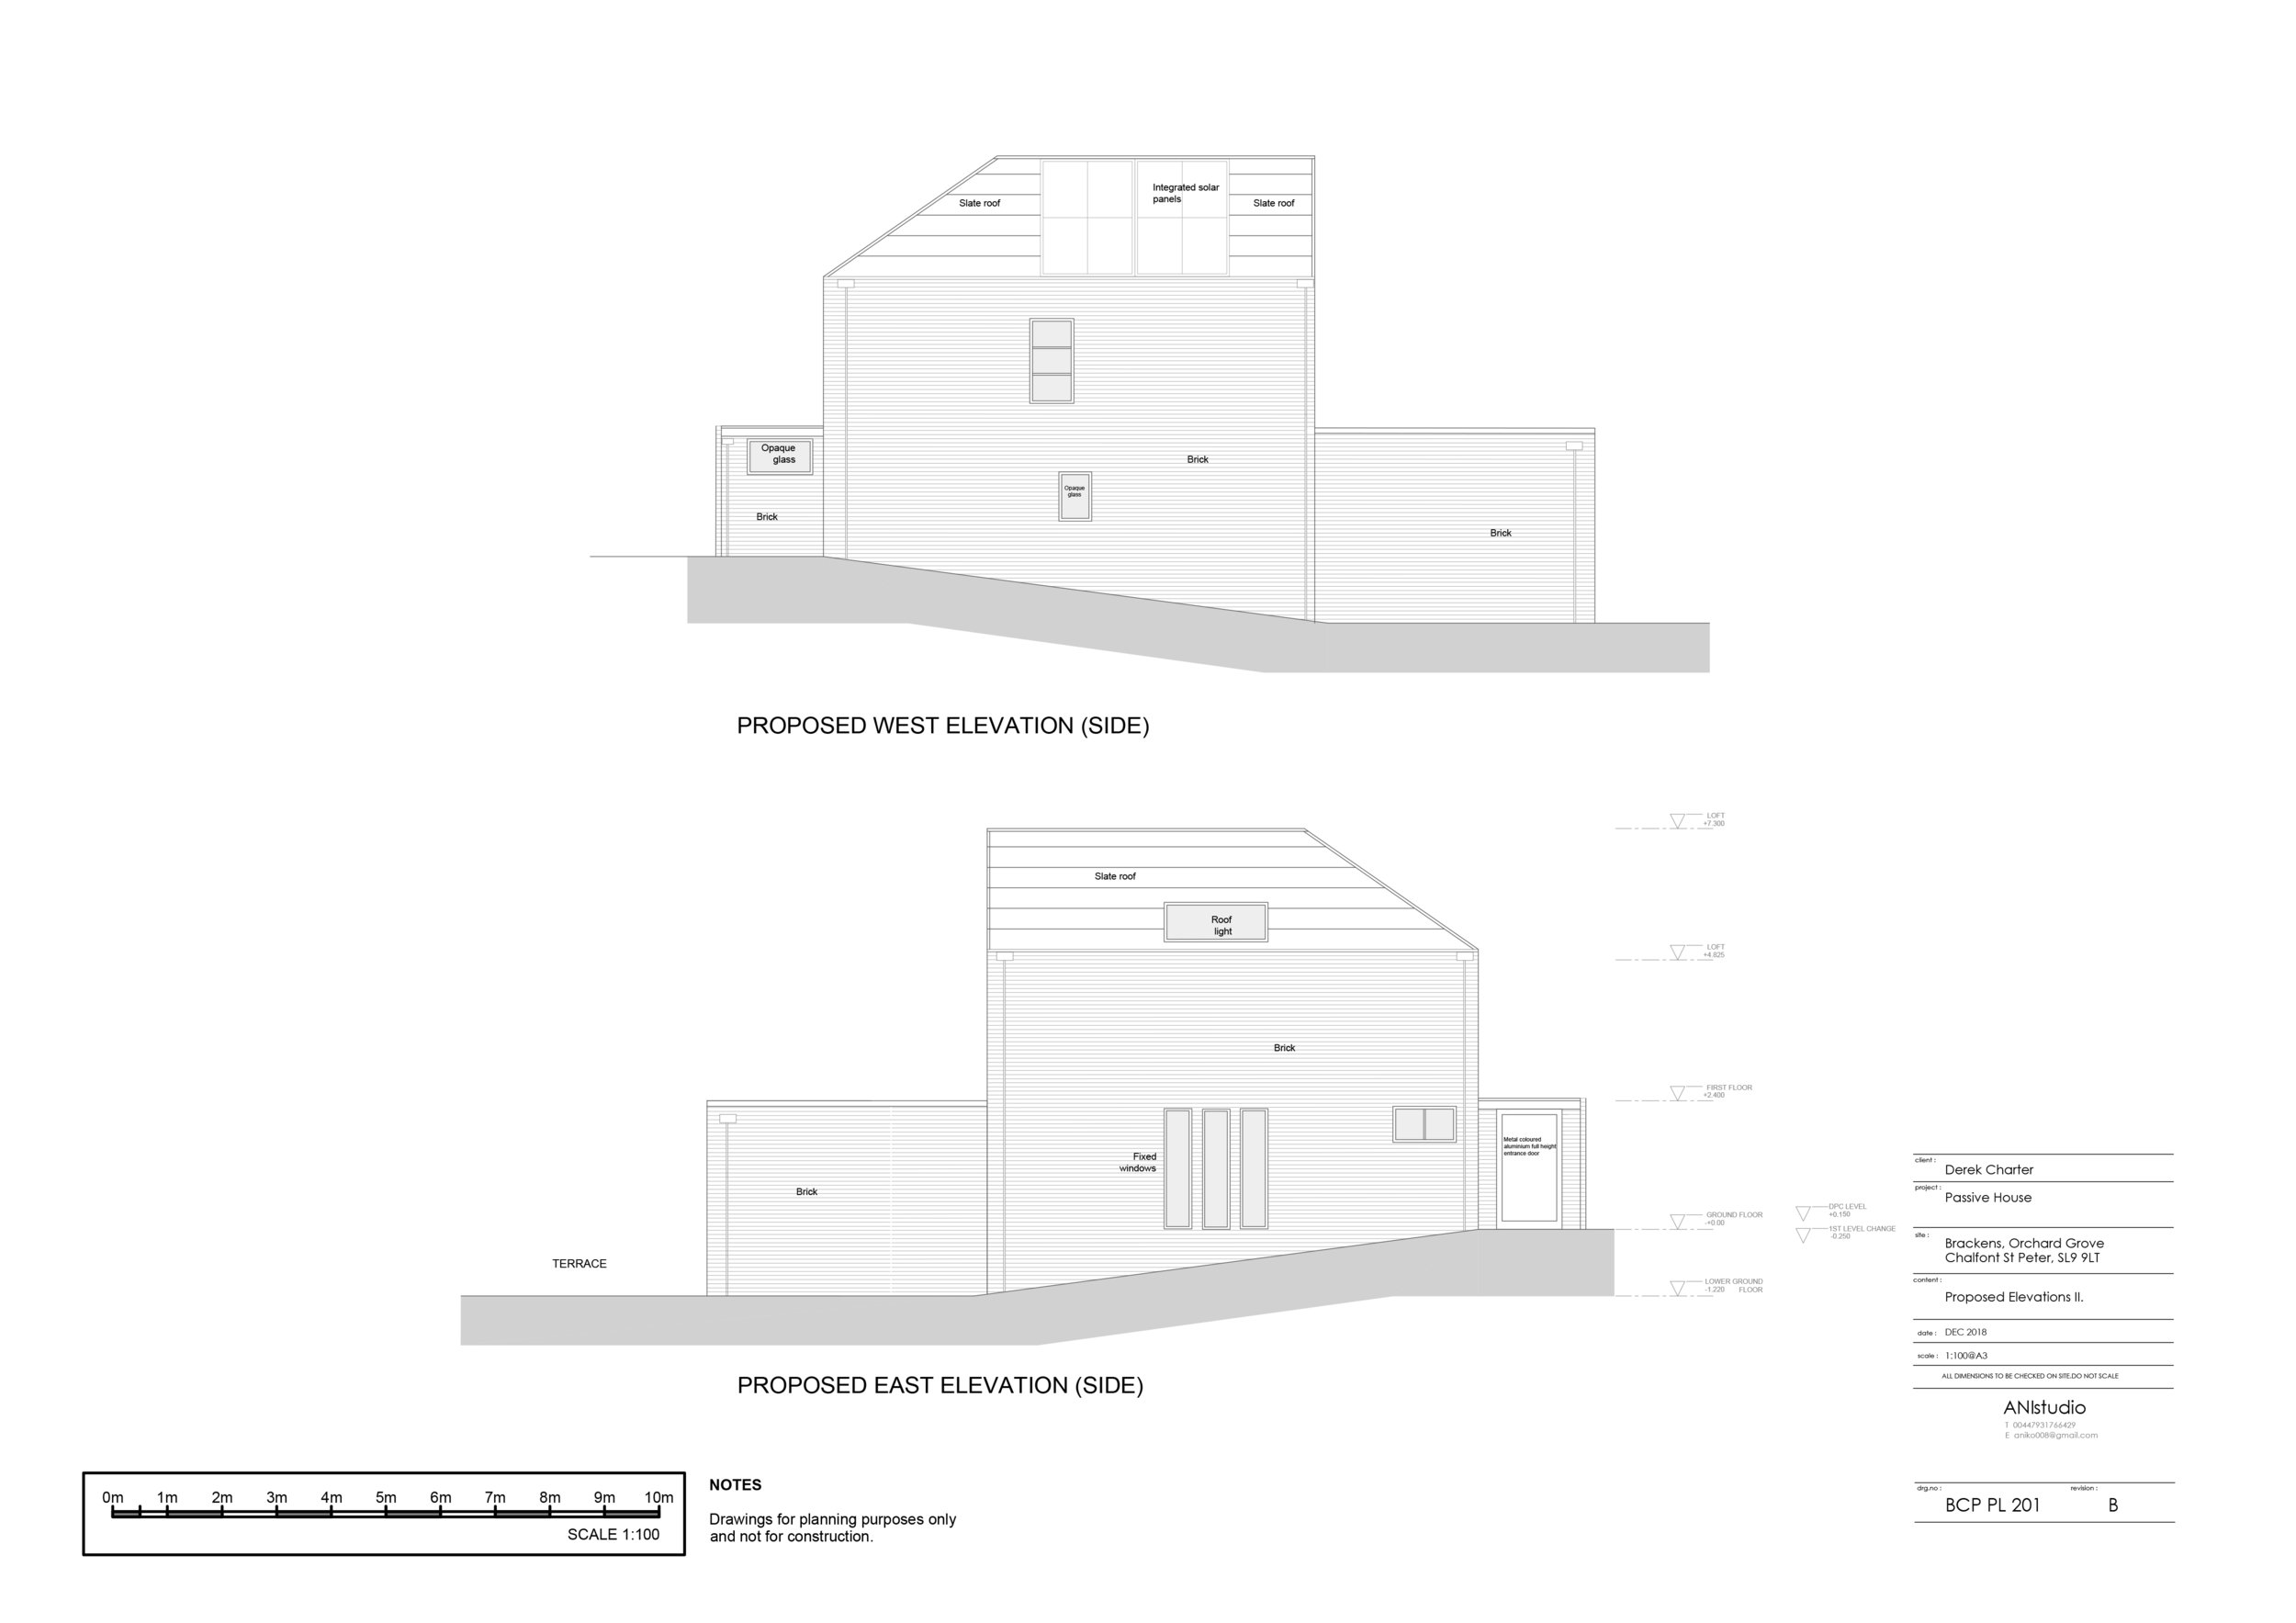 BCP PL 201_PROPOSED ELEVATIONS 2_REV B.jpg